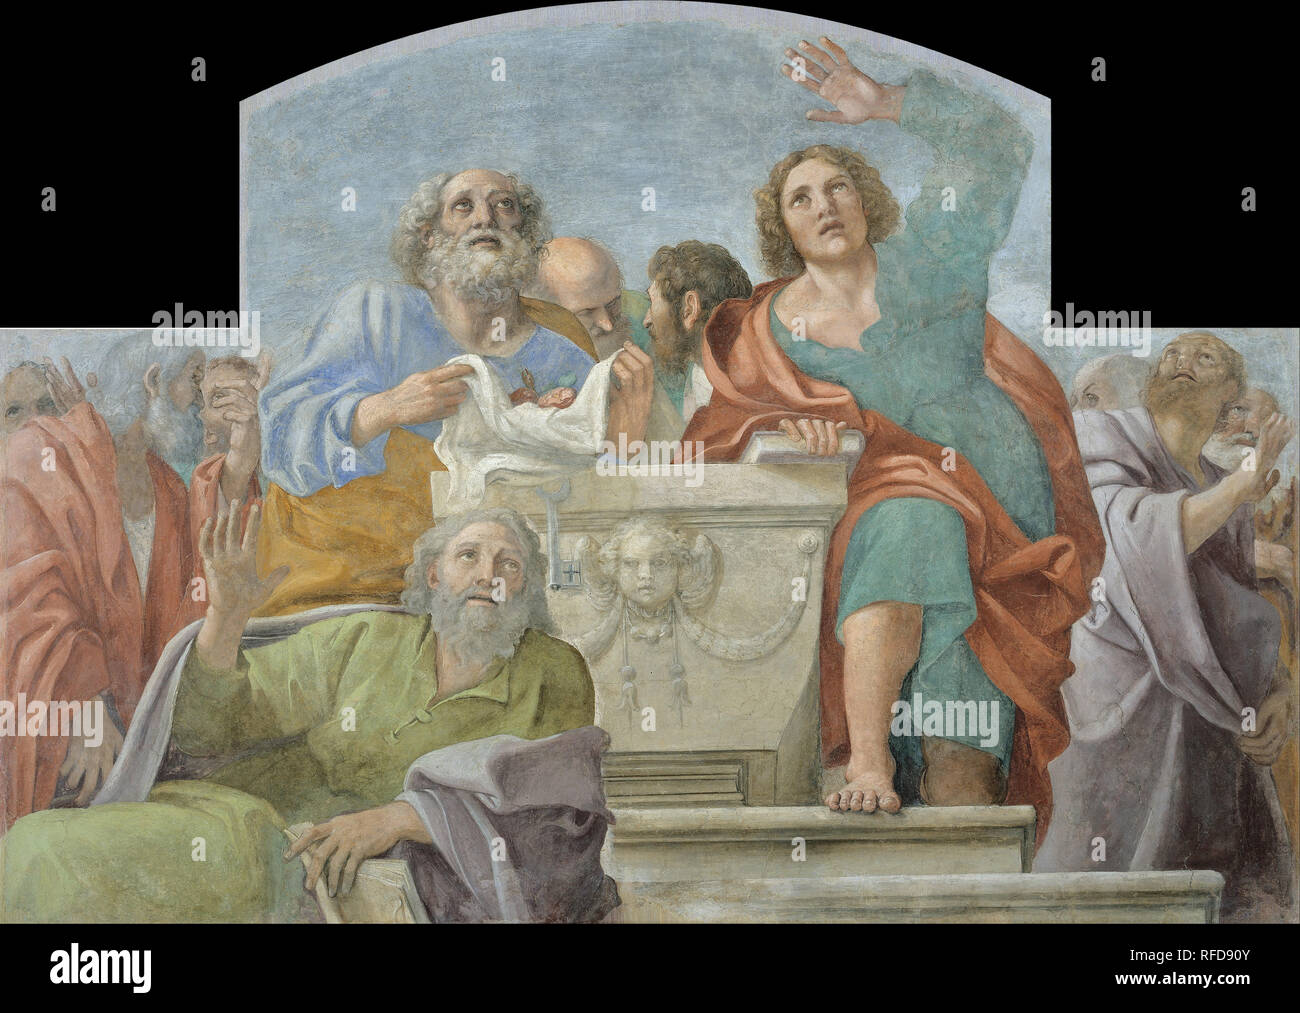 Apostles around the Empty Sepulchre. Date/Period: End of 1604 - beginning of 1605. Painting. Fresco transferred to canvas. Height: 1,930 mm (75.98 in); Width: 2,725 mm (107.28 in). Author: Annibale Carracci. FRANCESCO ALBANI. CARRACCI, ANNIBALE. - Stock Image